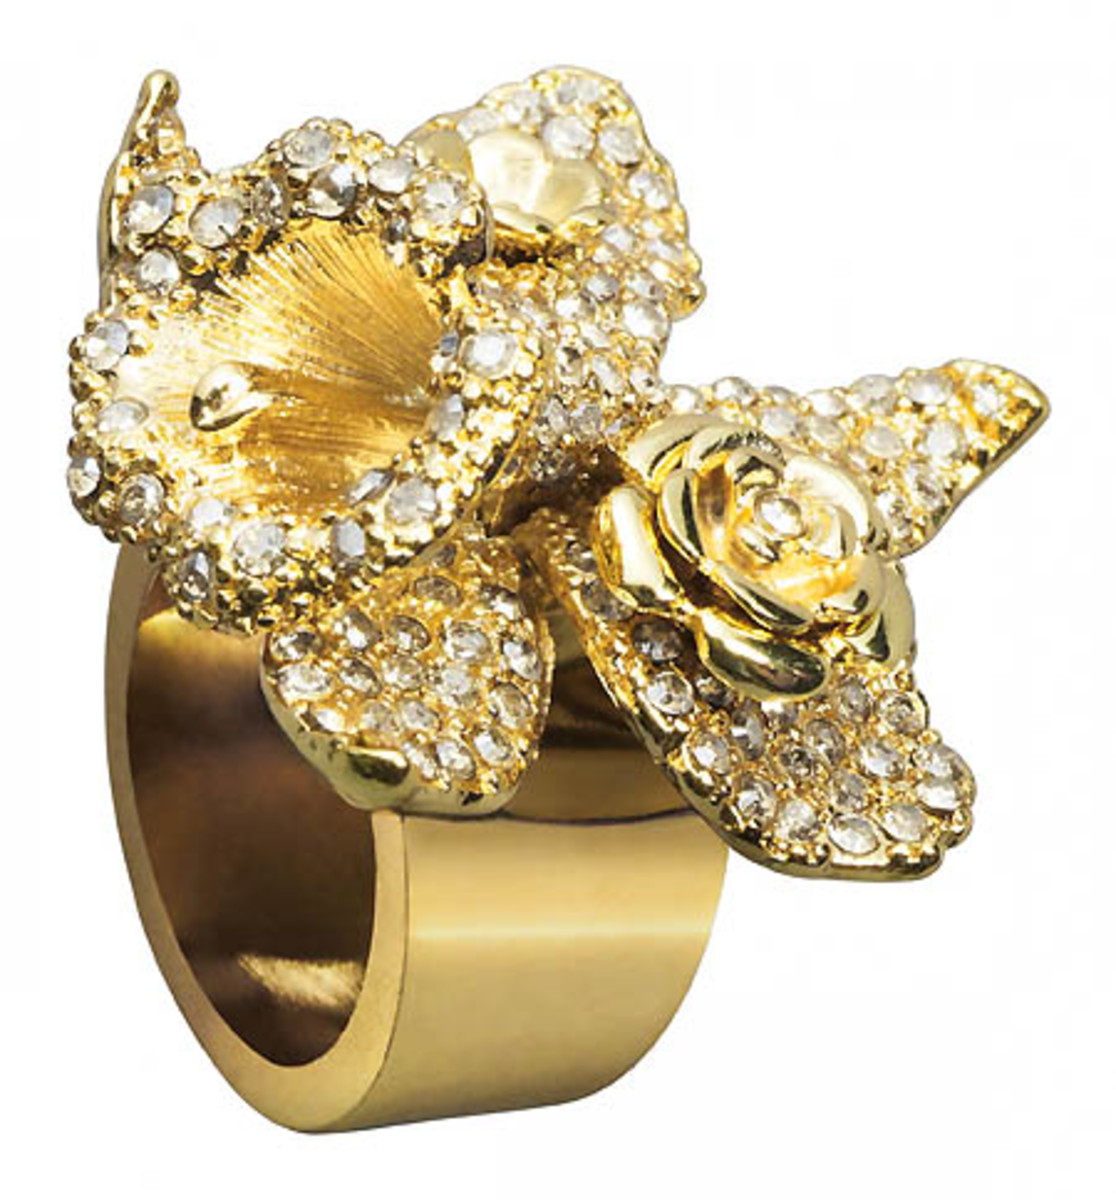 Versace for H&M gold ring